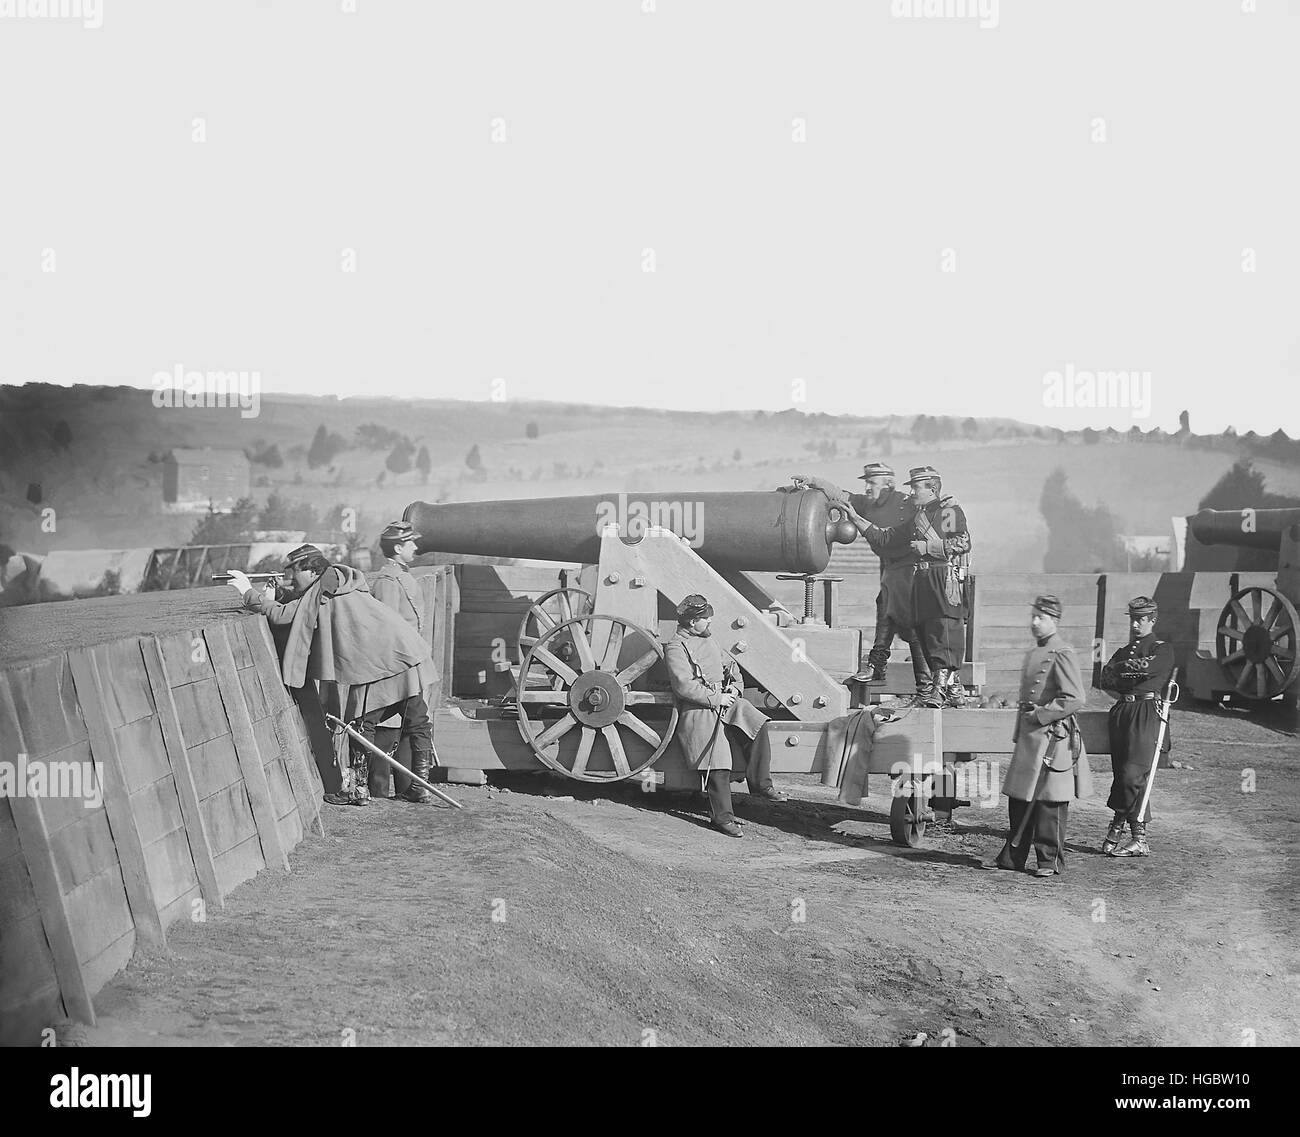 Officers operating a cannon at Fort Tennalytown during American Civil War. - Stock Image